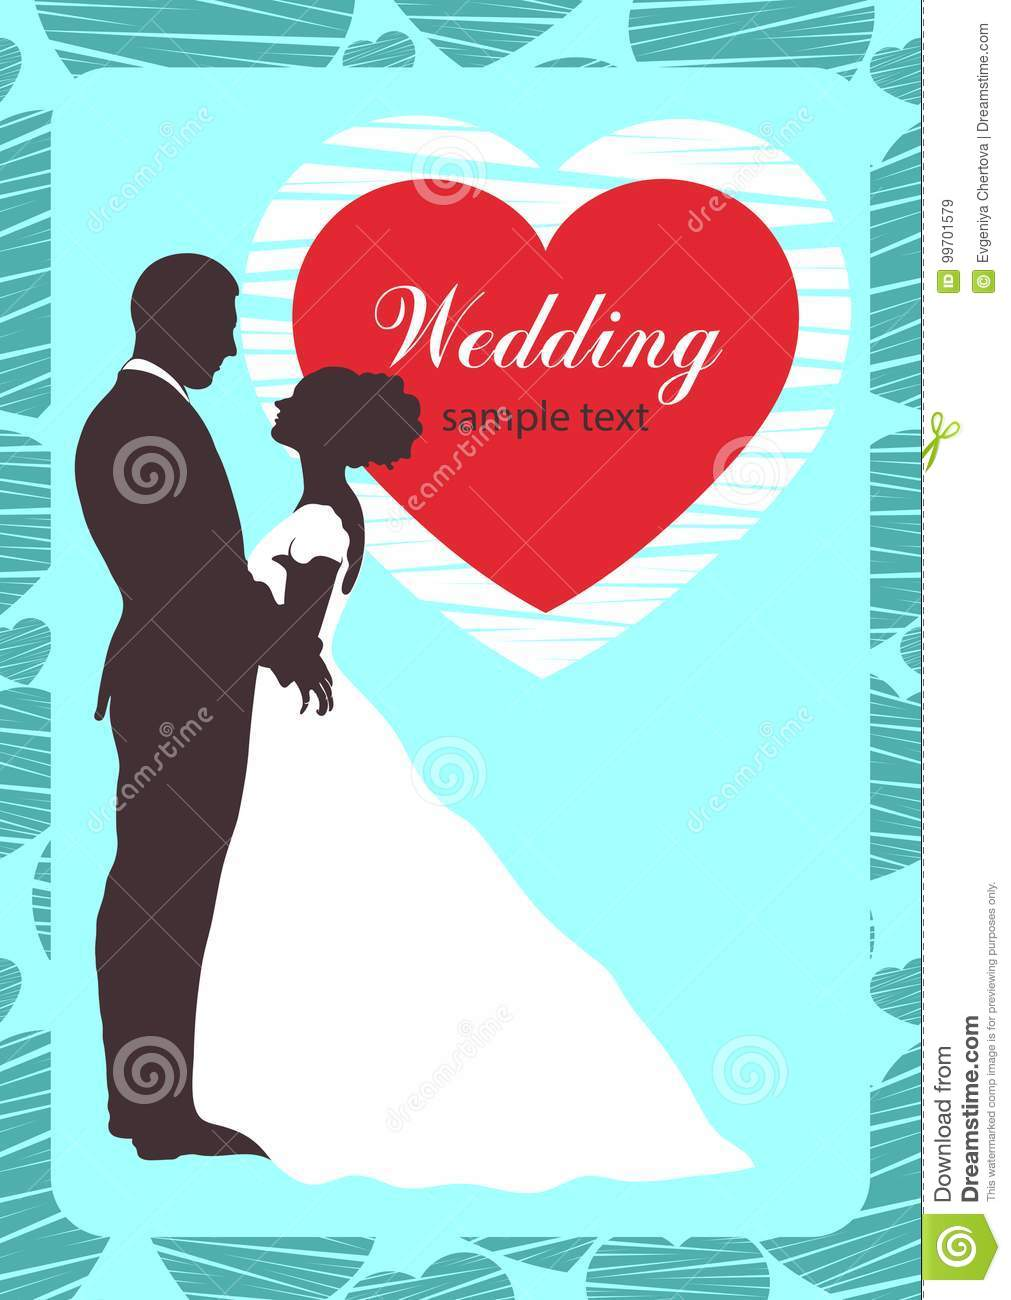 Bride And Groom Silhouette, Wedding Invitation, Card, Outline ...